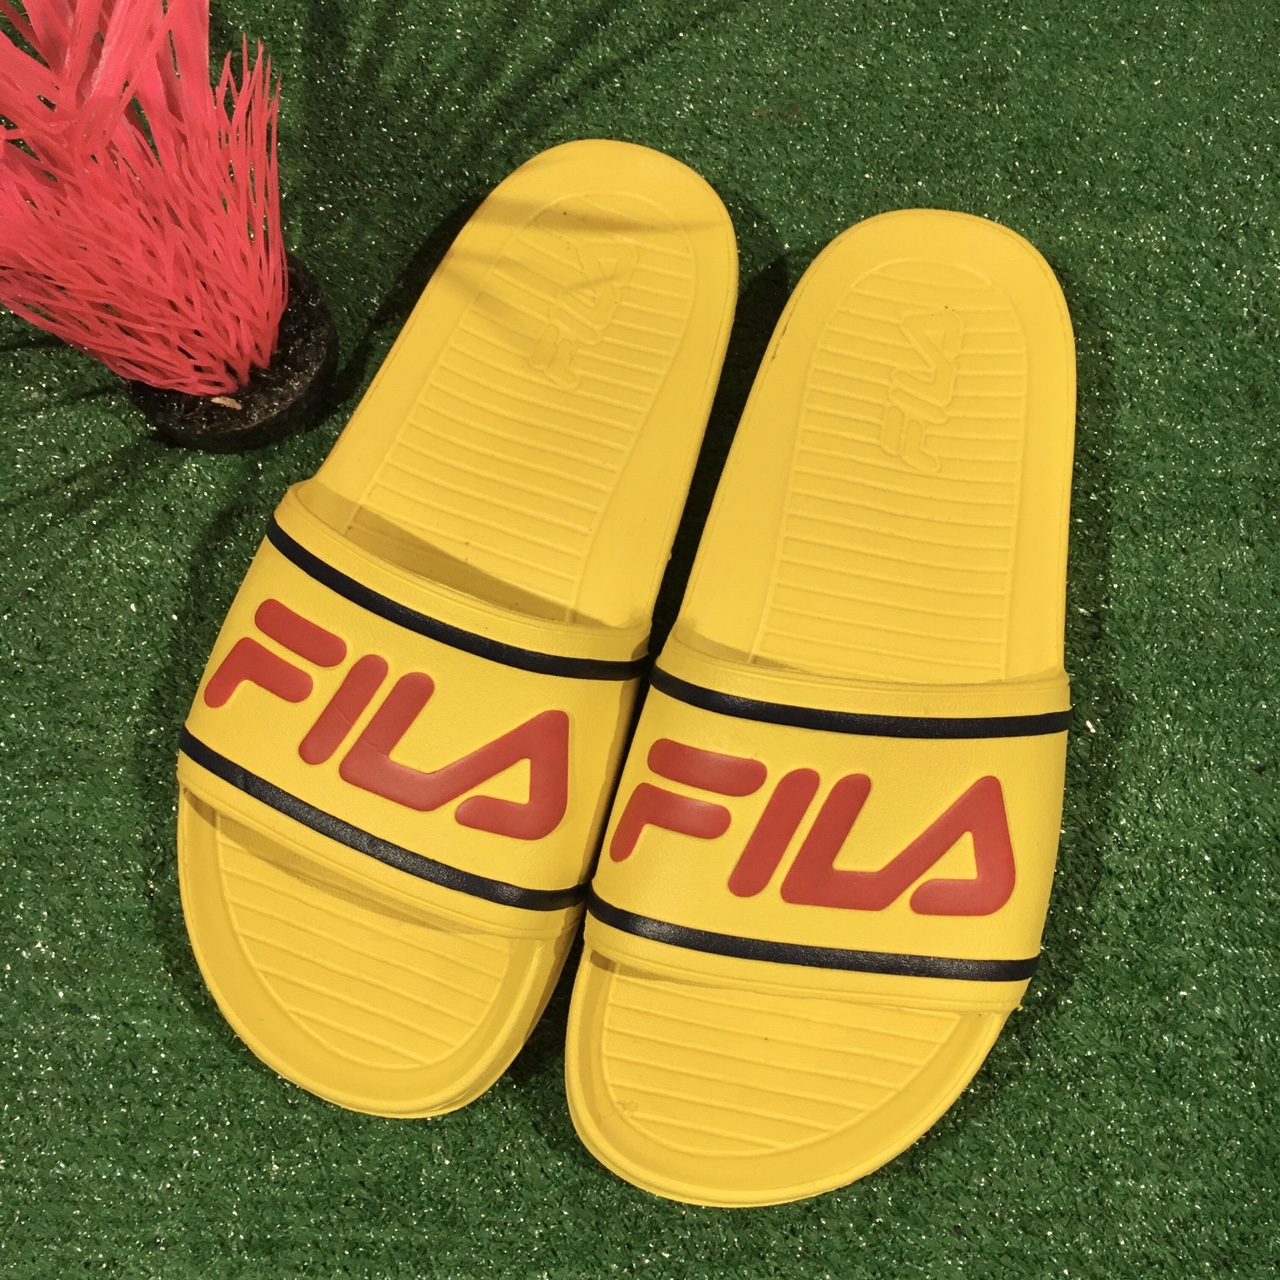 Fila Slides Mustard Yellow Red Spellout